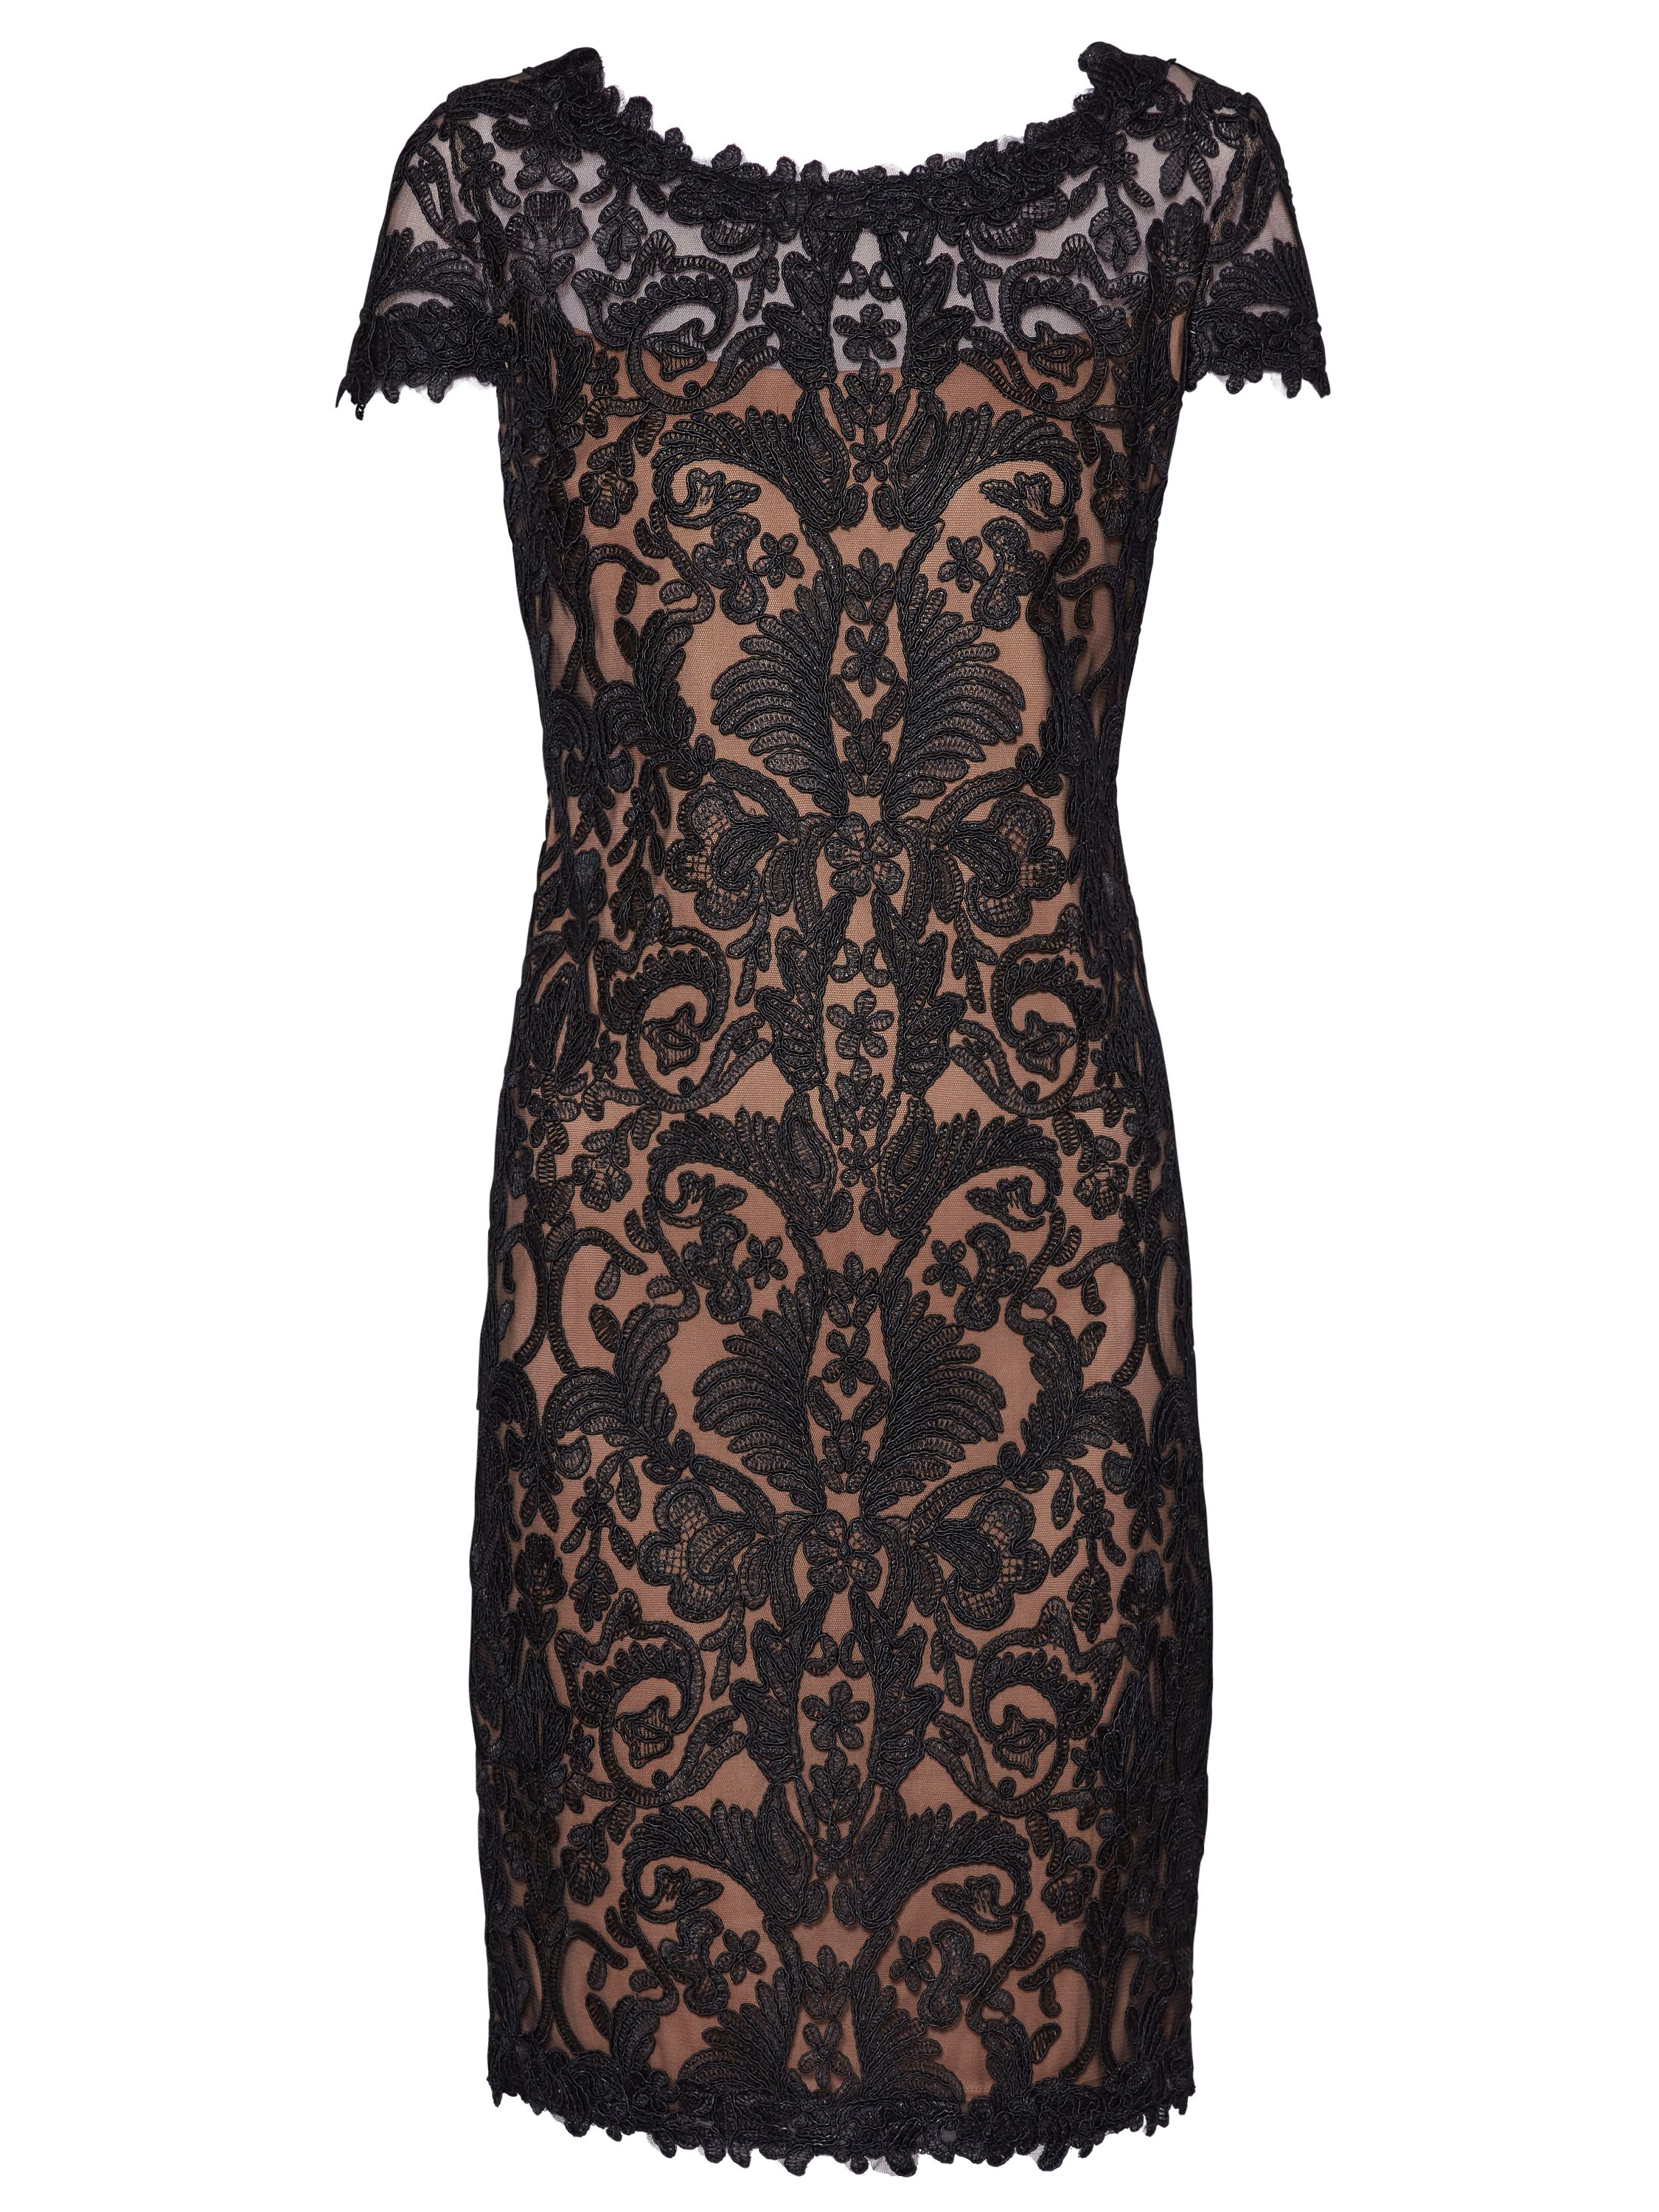 Gina Bacconi Tabitha Embroidery Dress, Black